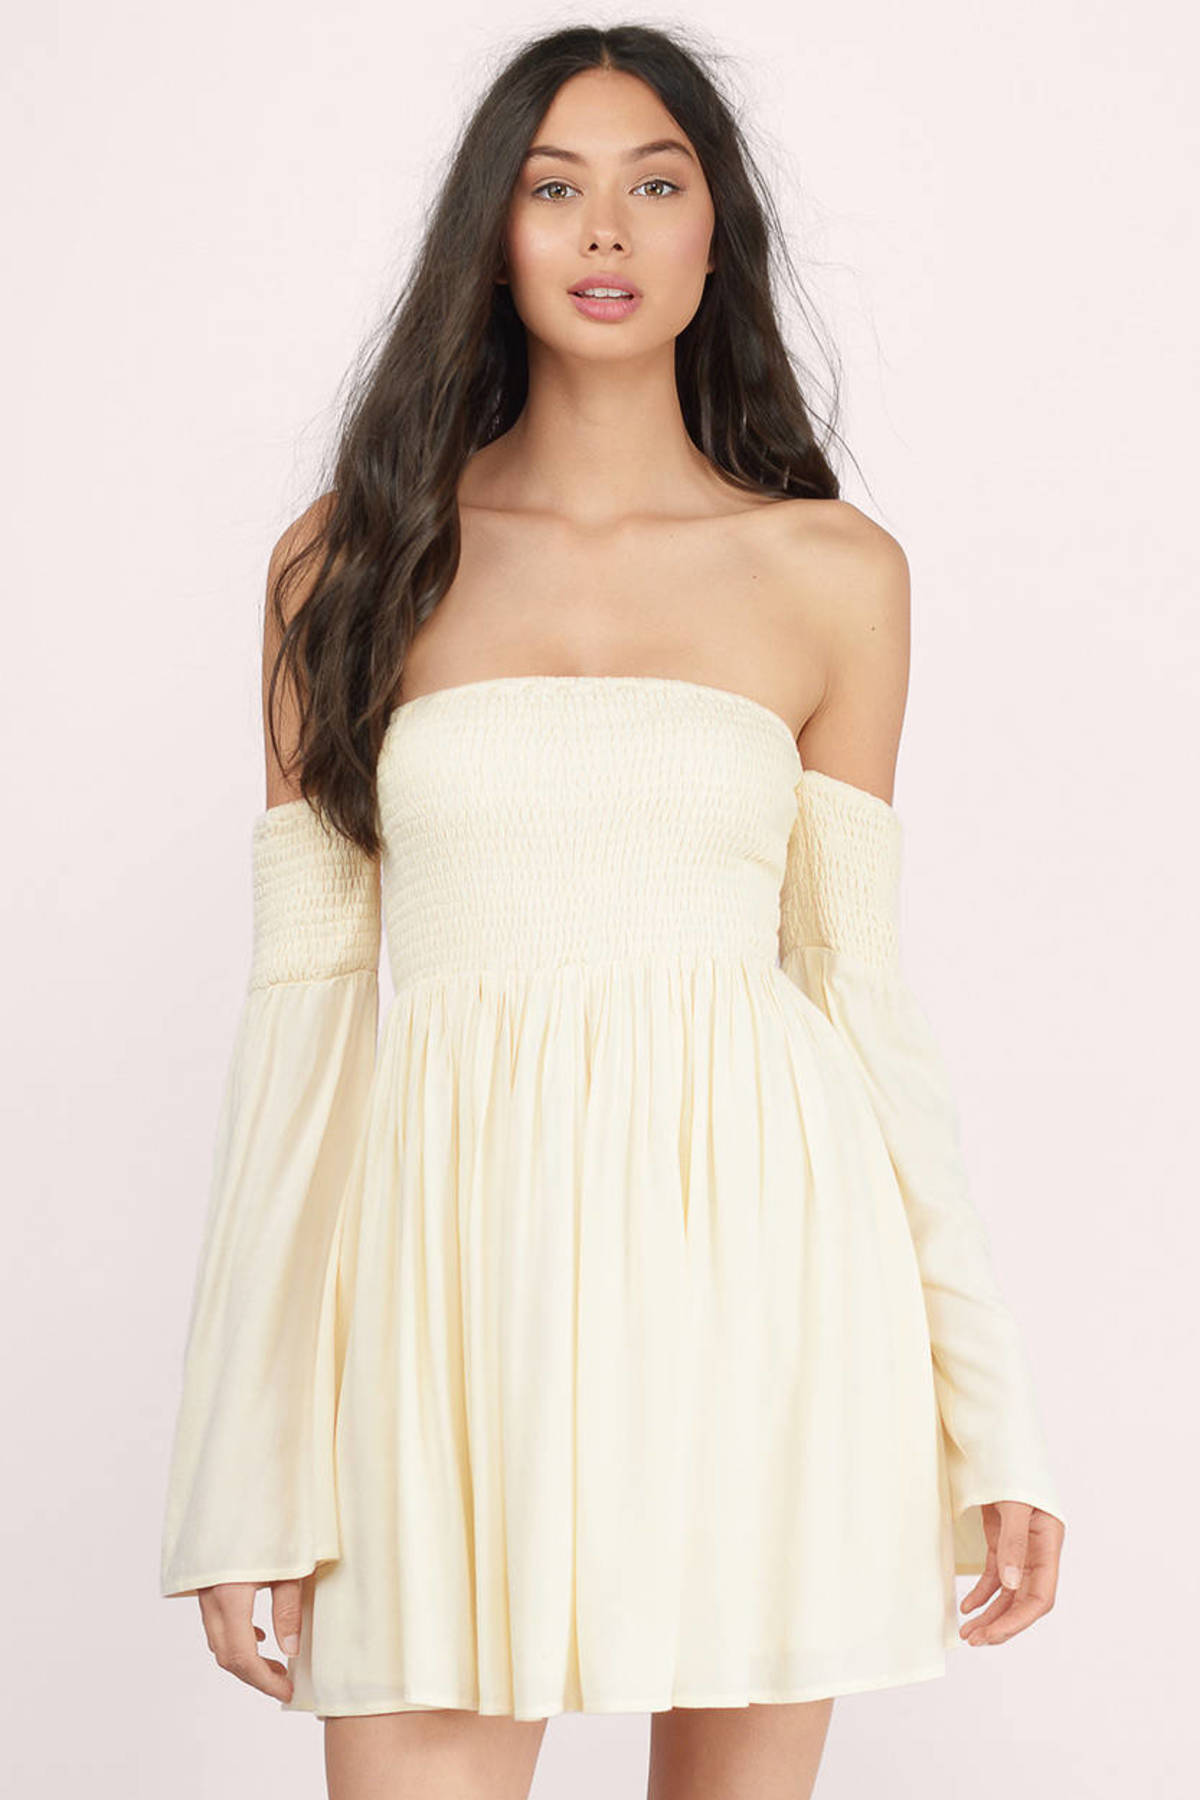 yellow and white sundress dress images